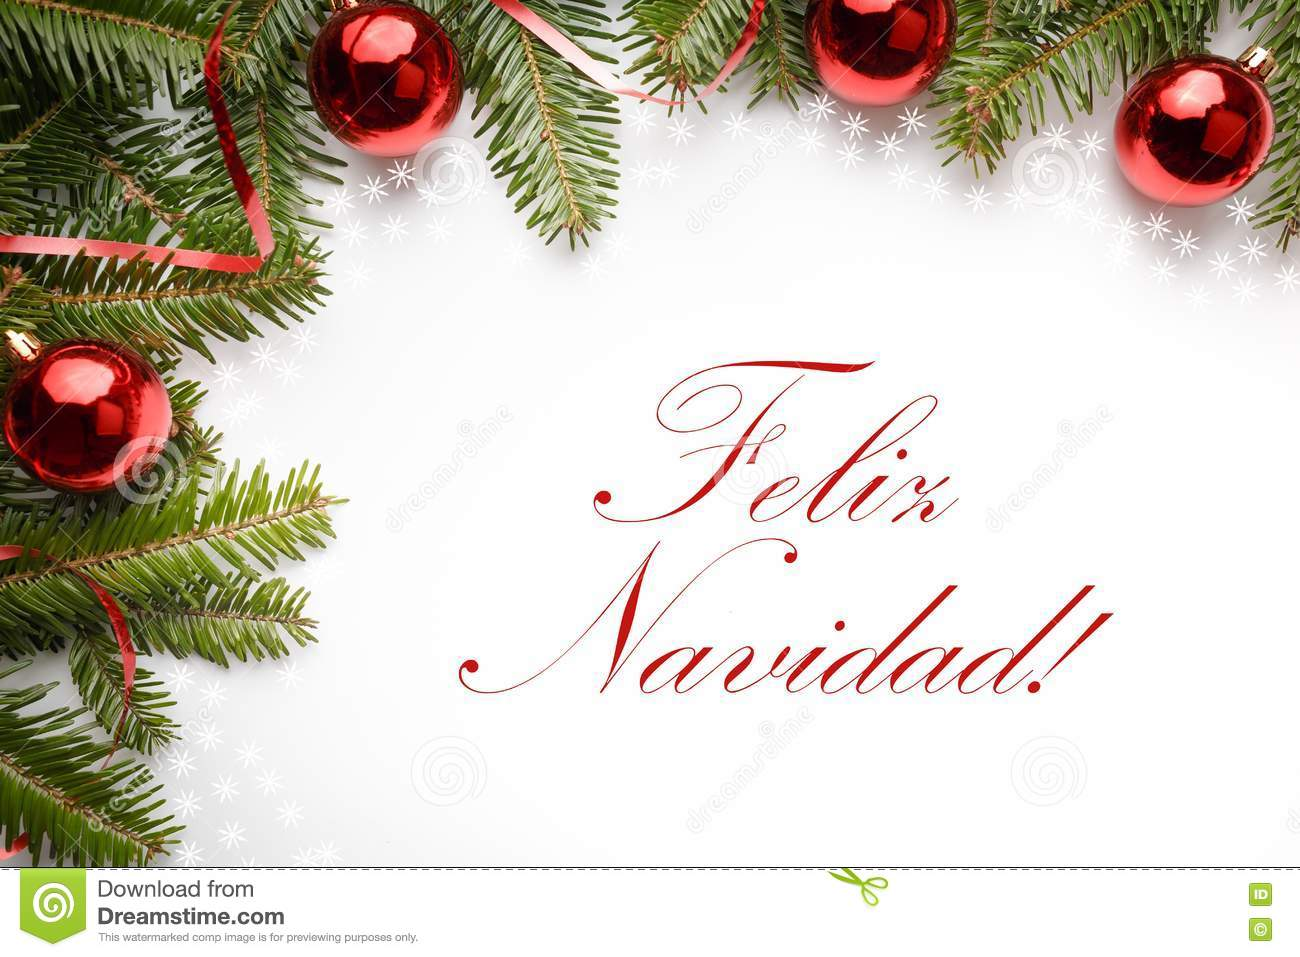 christmas decorations with the greeting feliz navidad in spanish stock photo image of feliz natale 81519338 dreamstime com